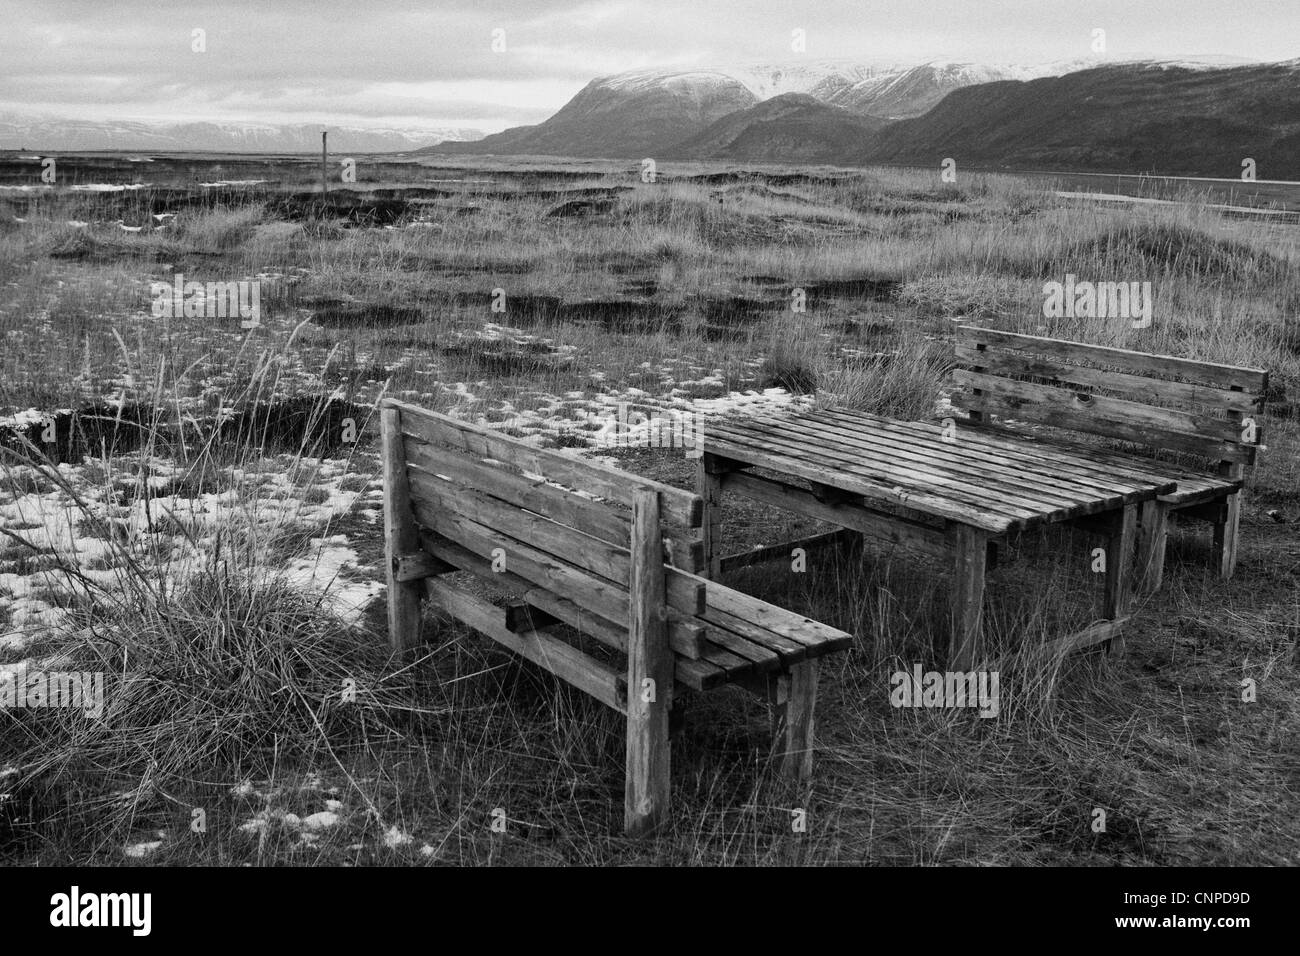 A lonely picnic bench inside the Artic Circle of Norway. - Stock Image